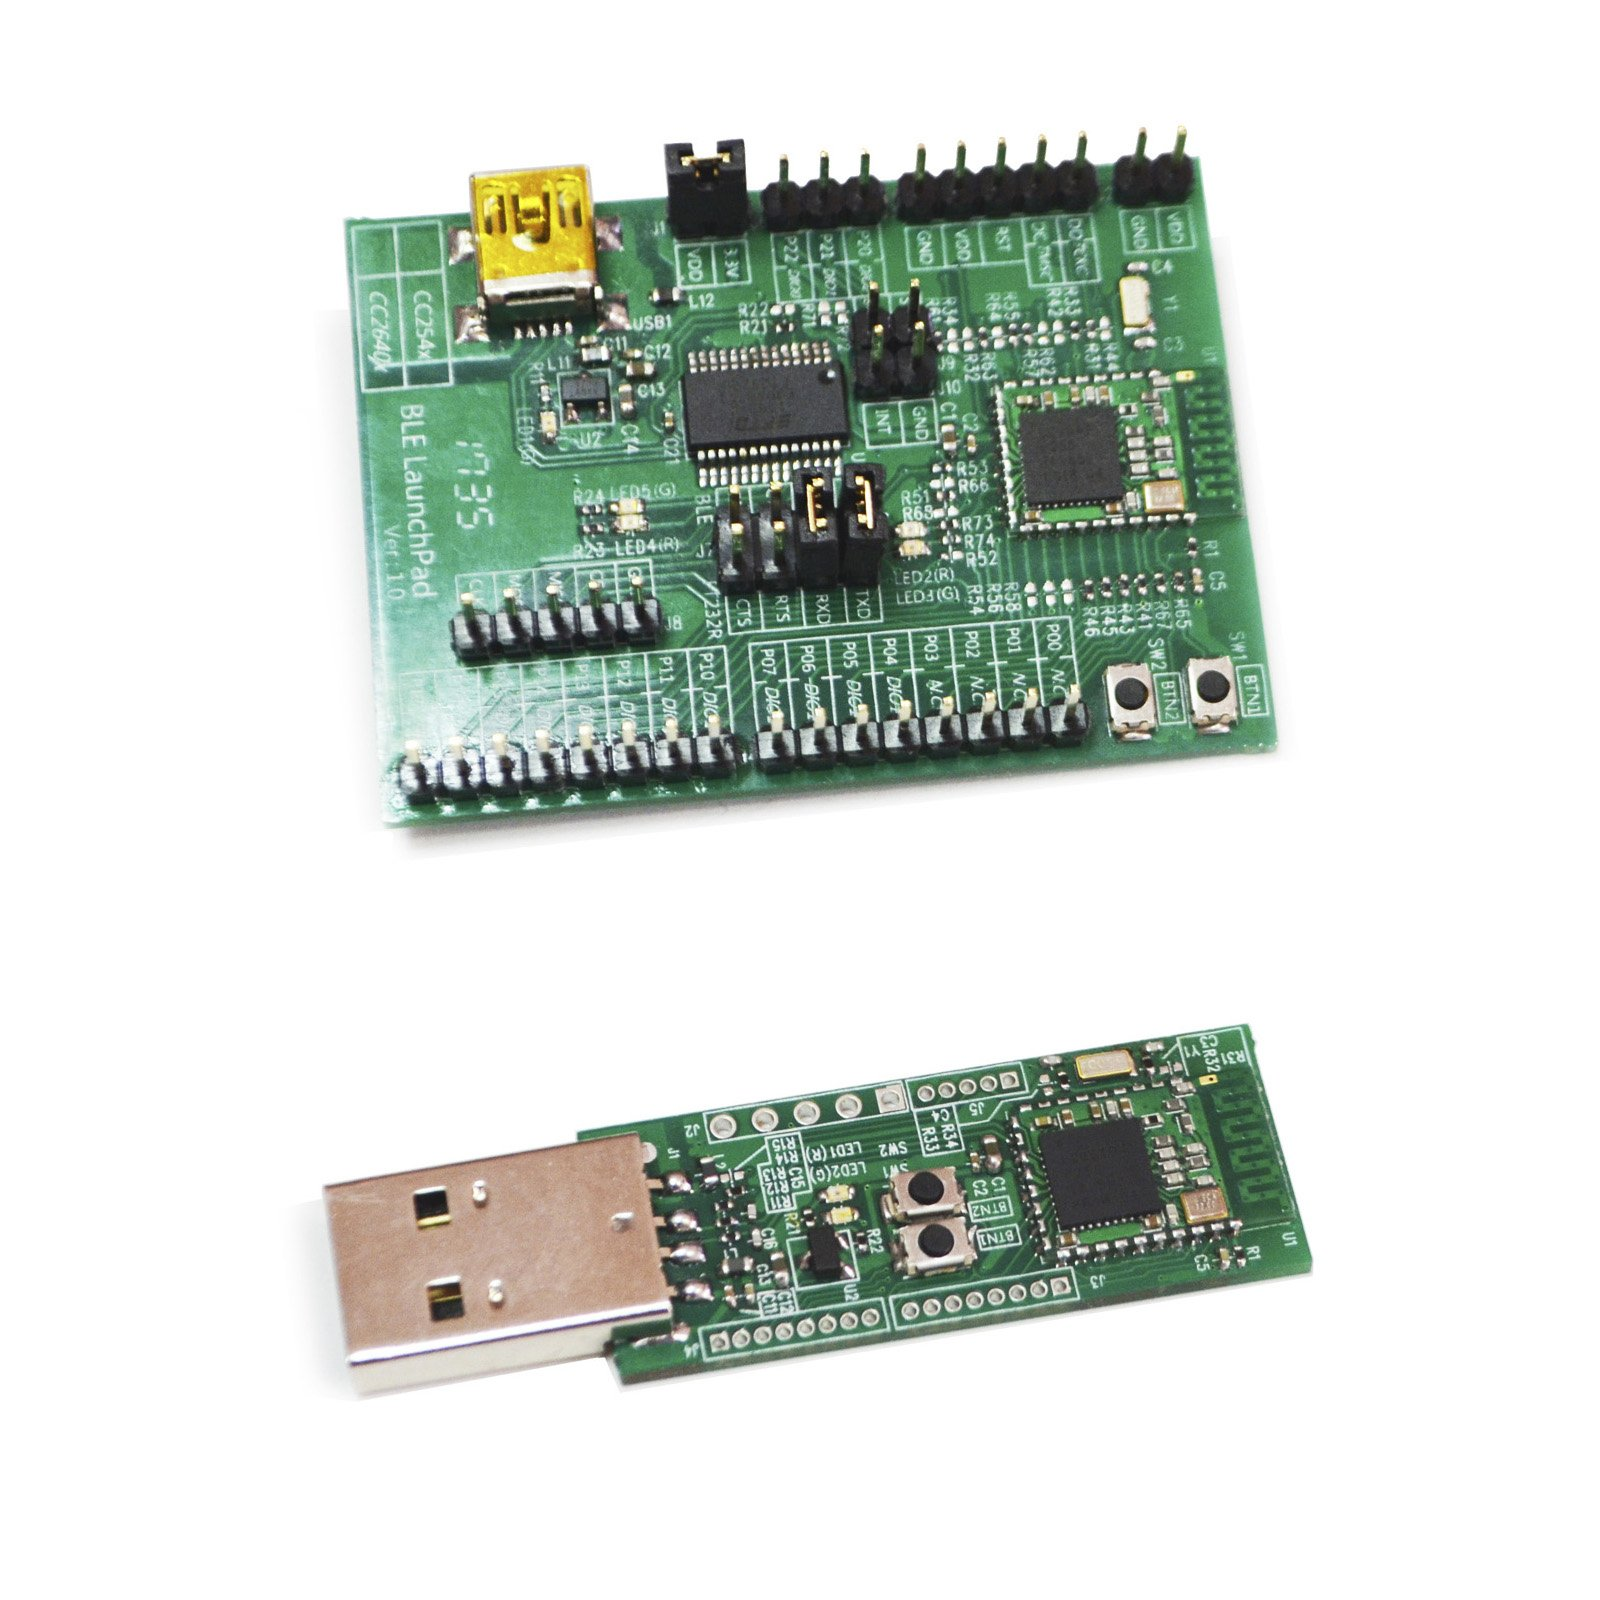 BLE 4.0 Bluetooth Development/Evaluation Kit Board USB-UART Interface EVK-CC2541 and USB Dongle UDK-CC2540 by ELSRA